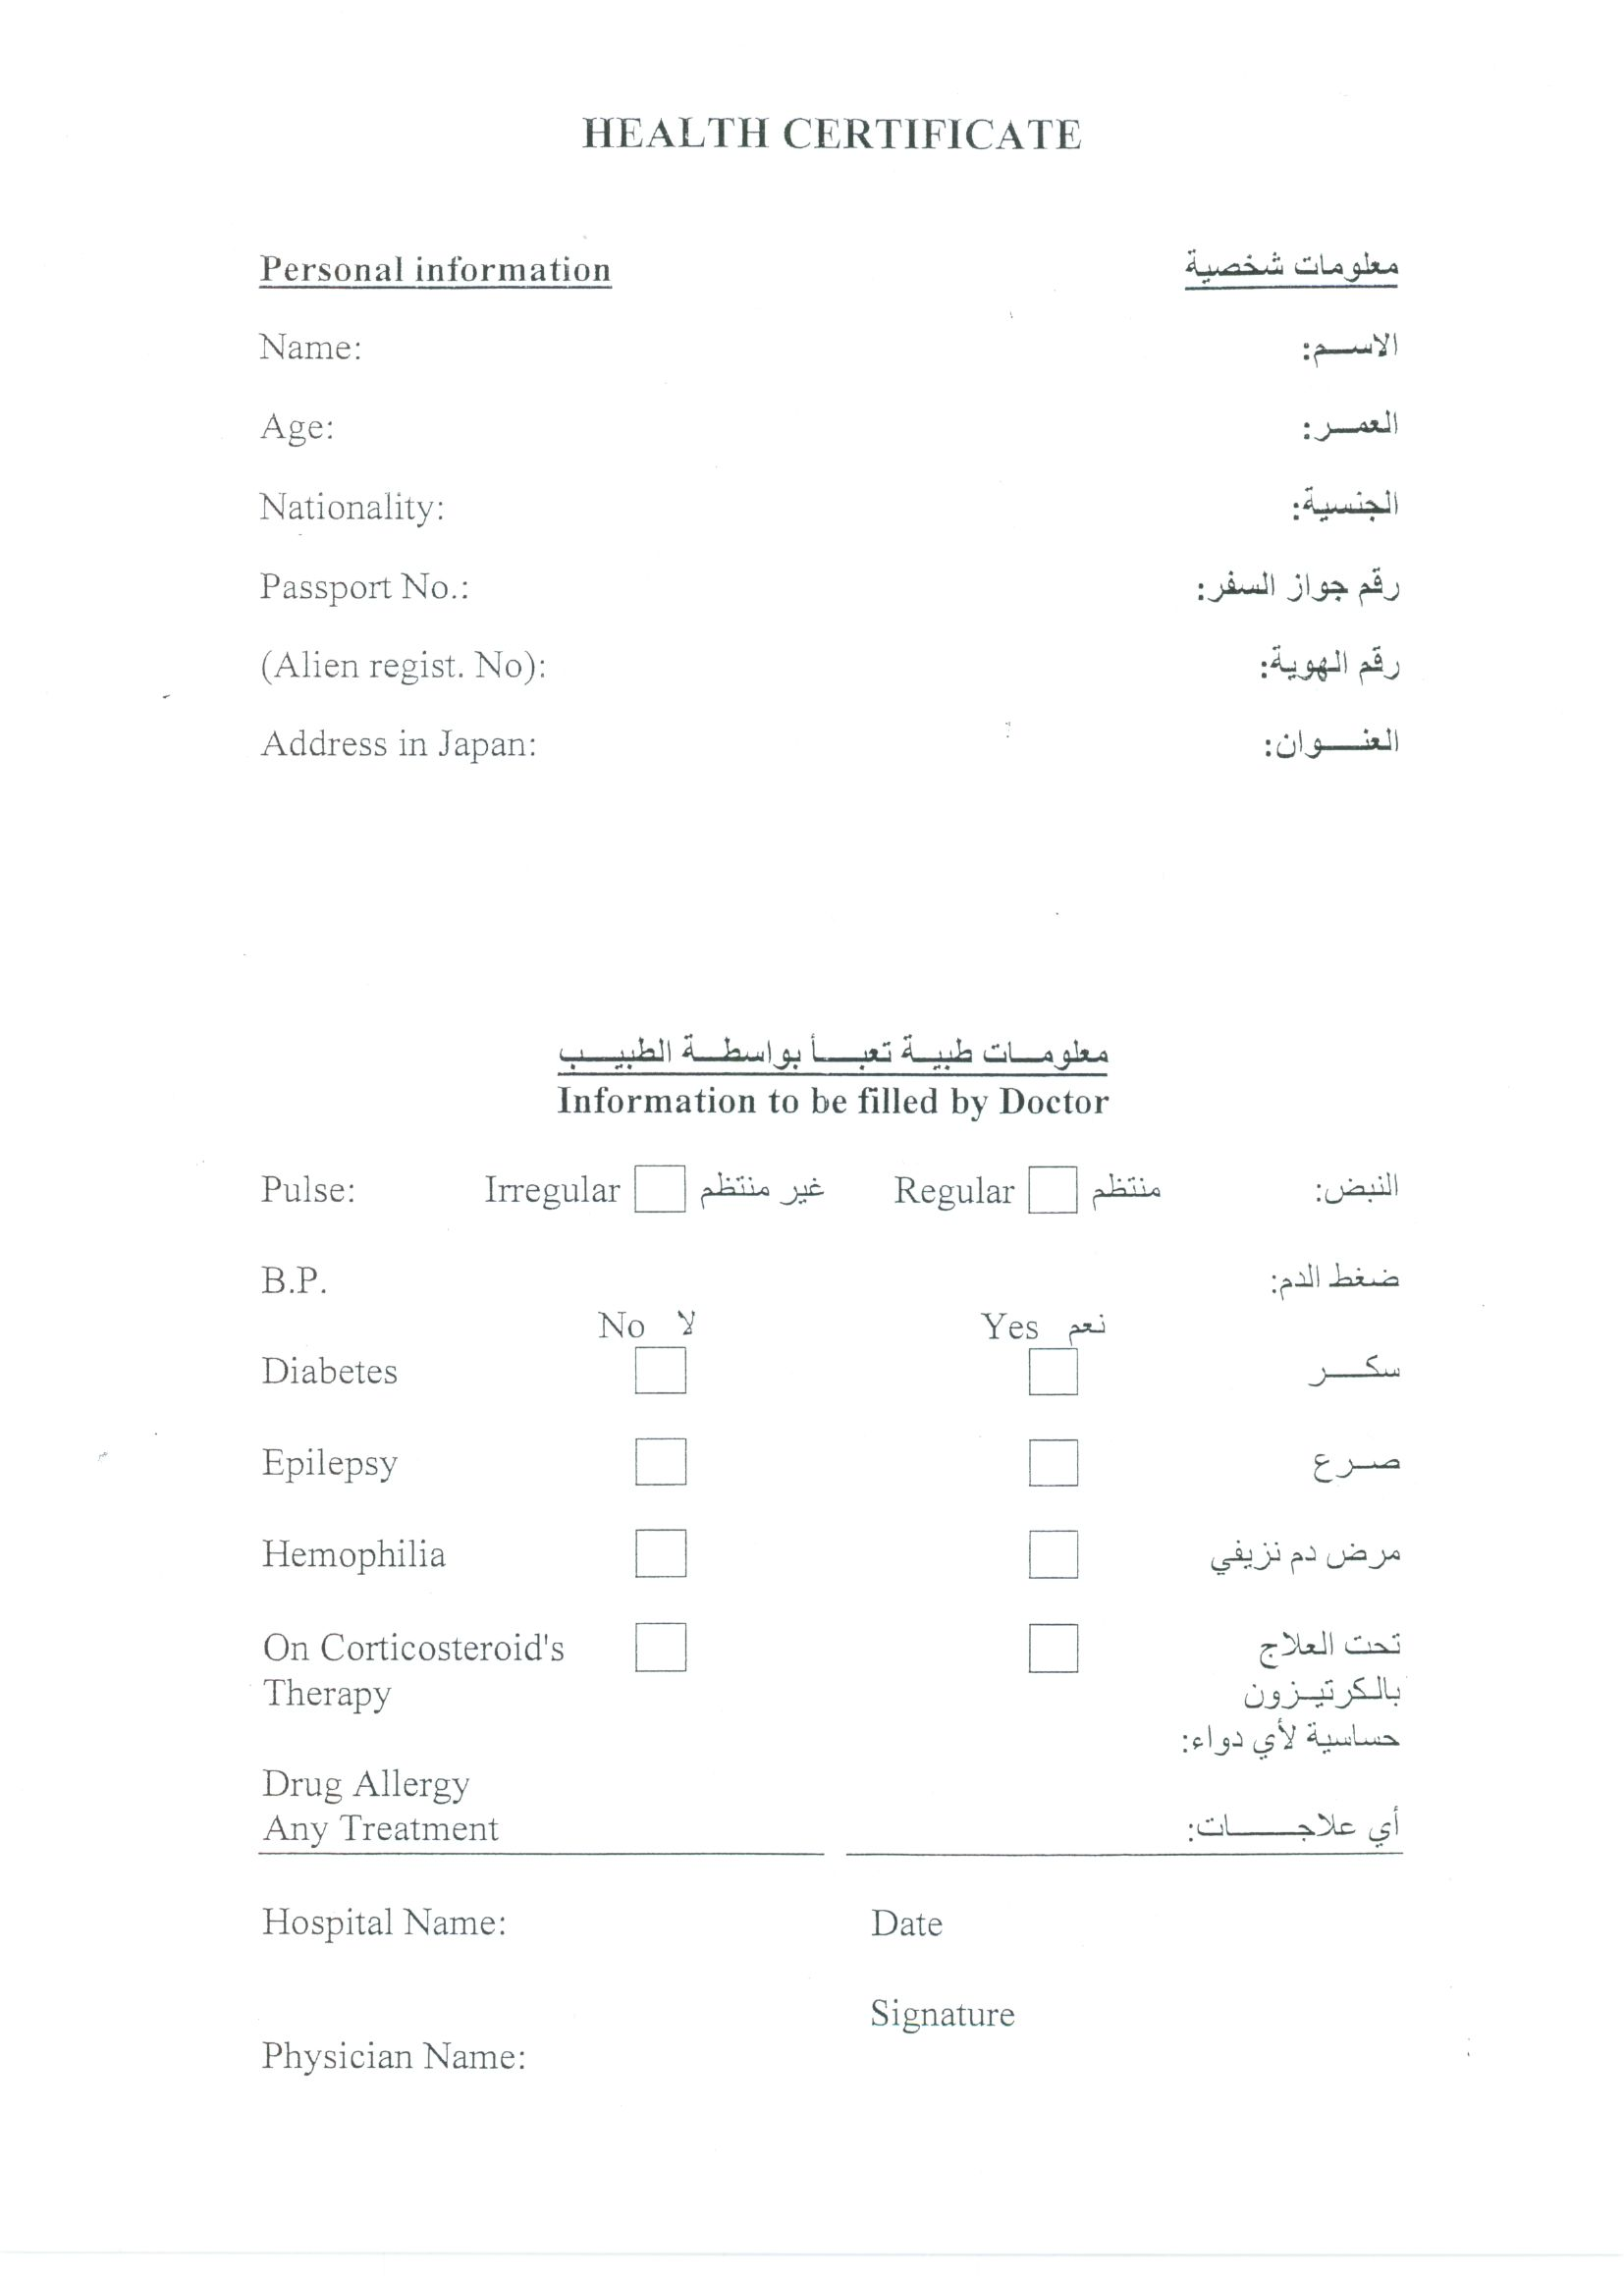 NEW PASSPORT APPLICATION FORM FOR WIFE